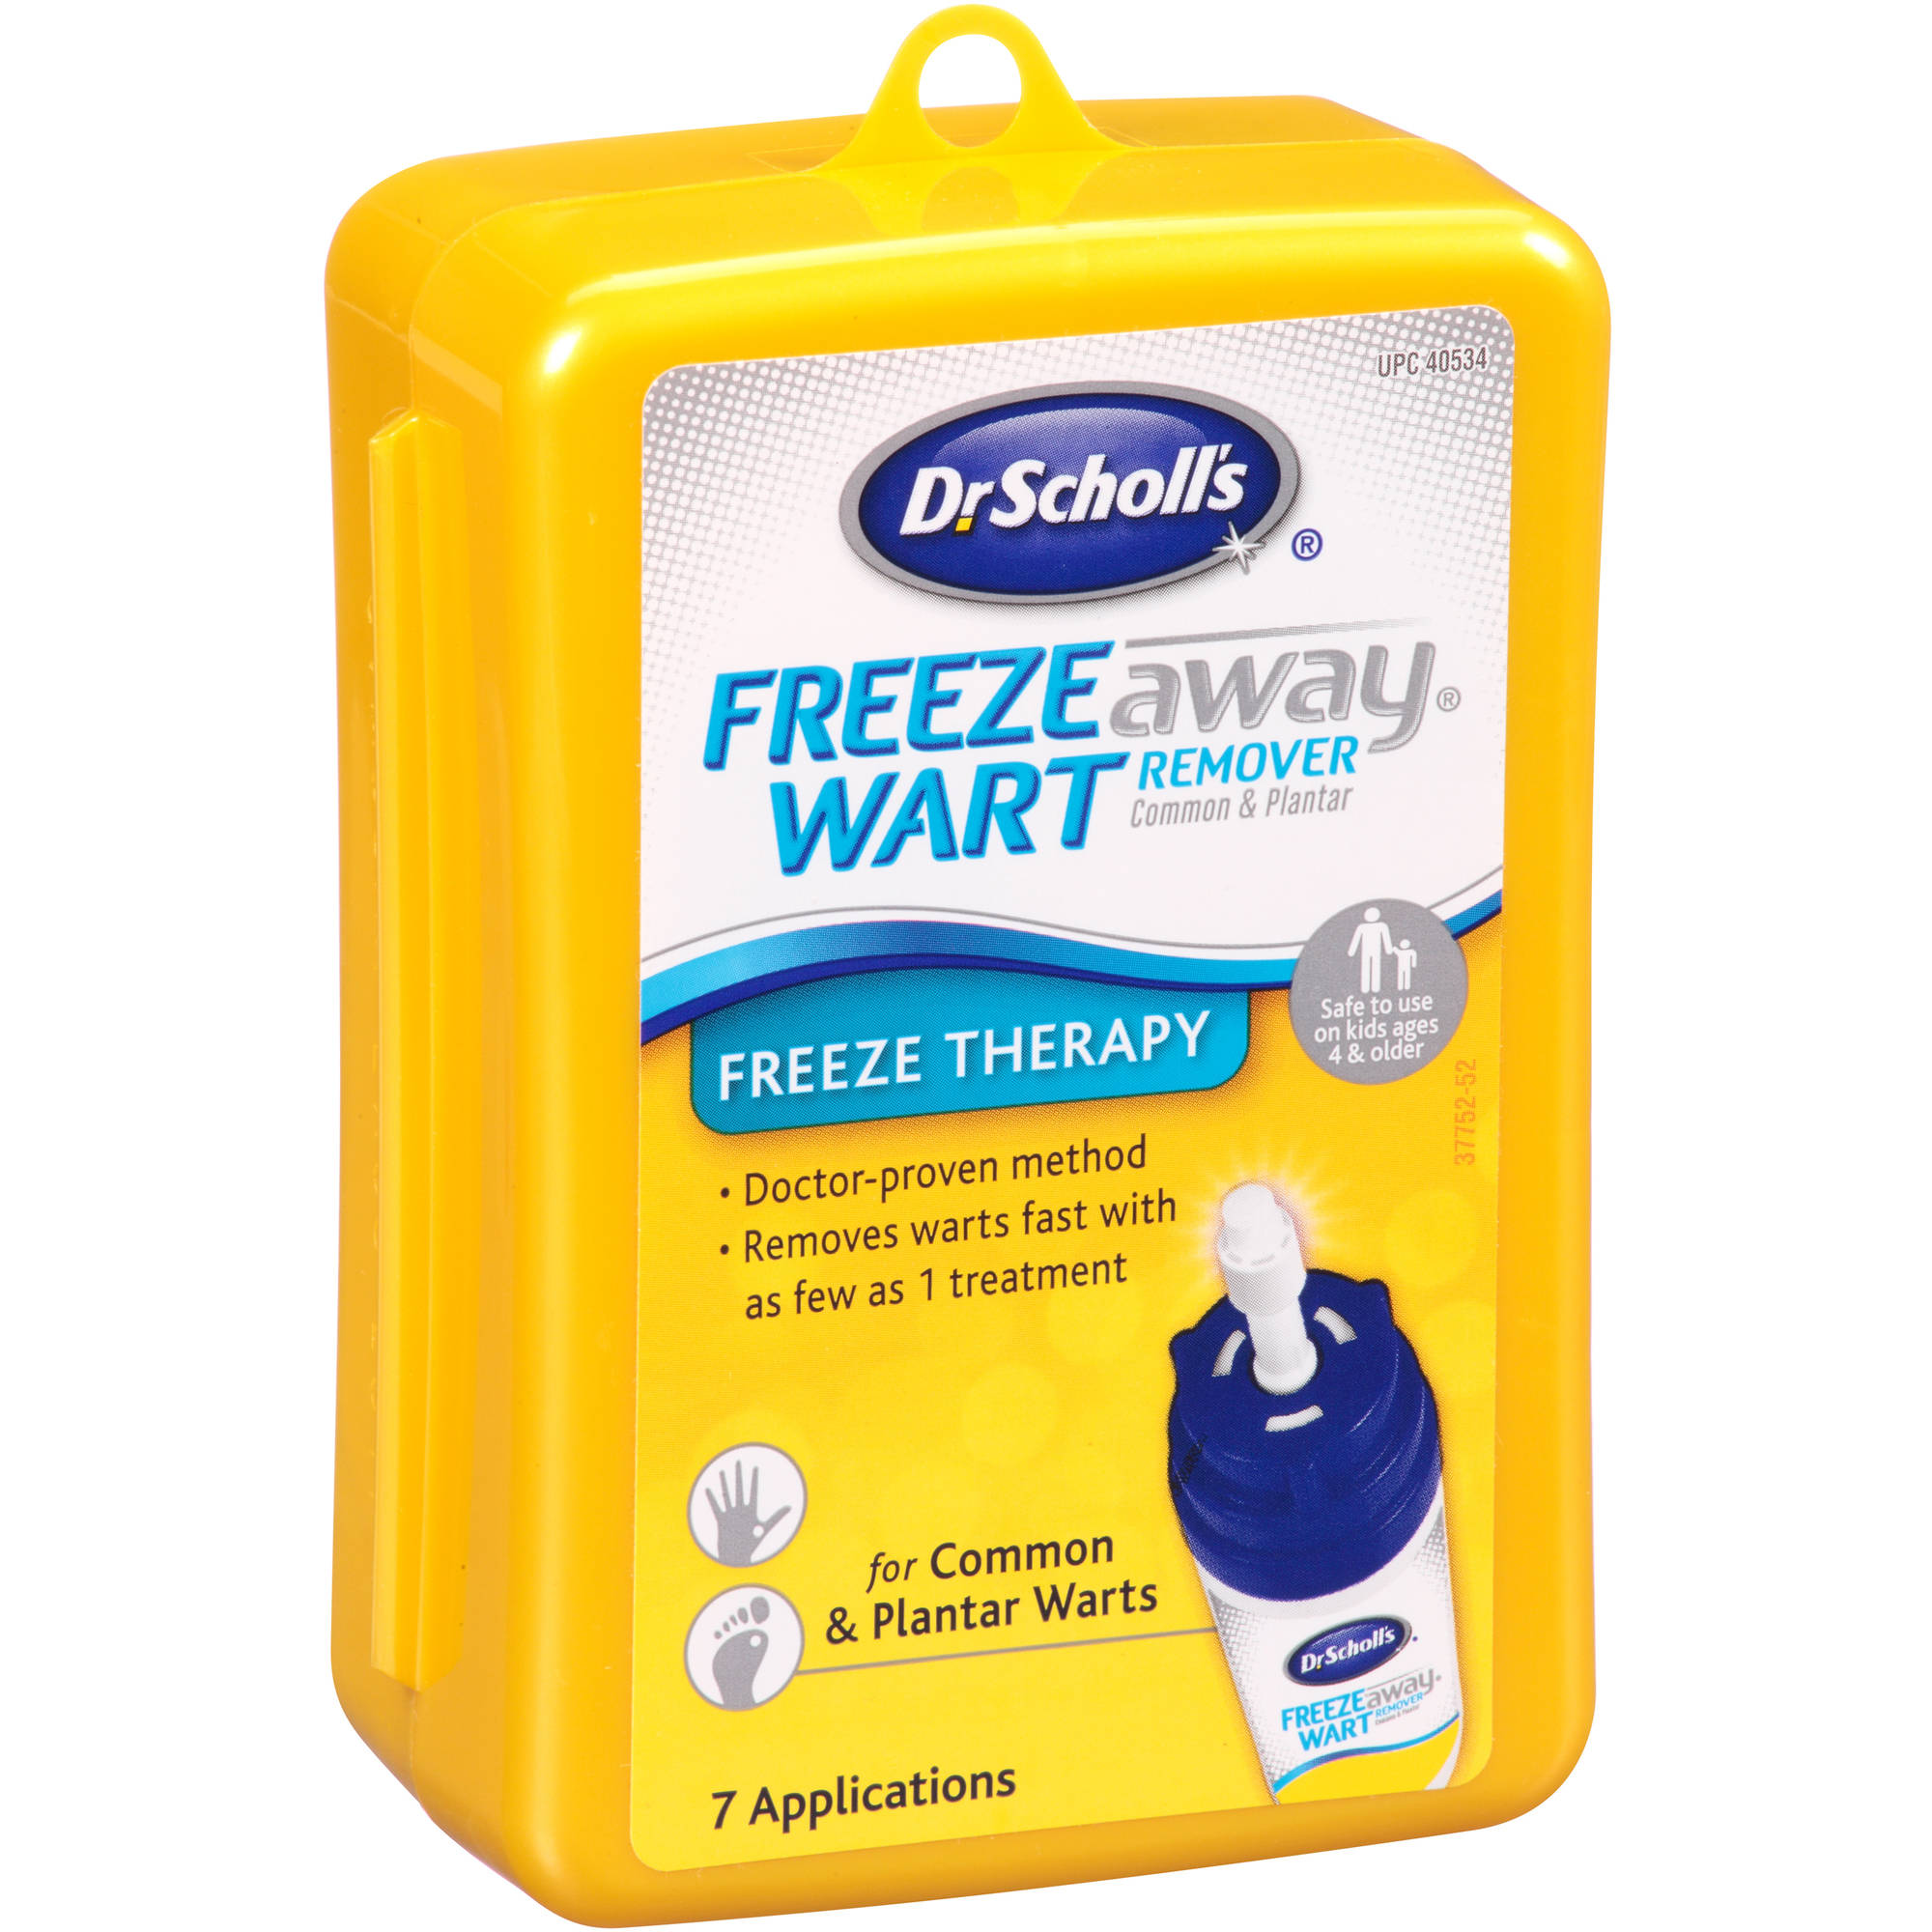 Dr. Scholl's Freeze Away Wart Remover, 7 Applications